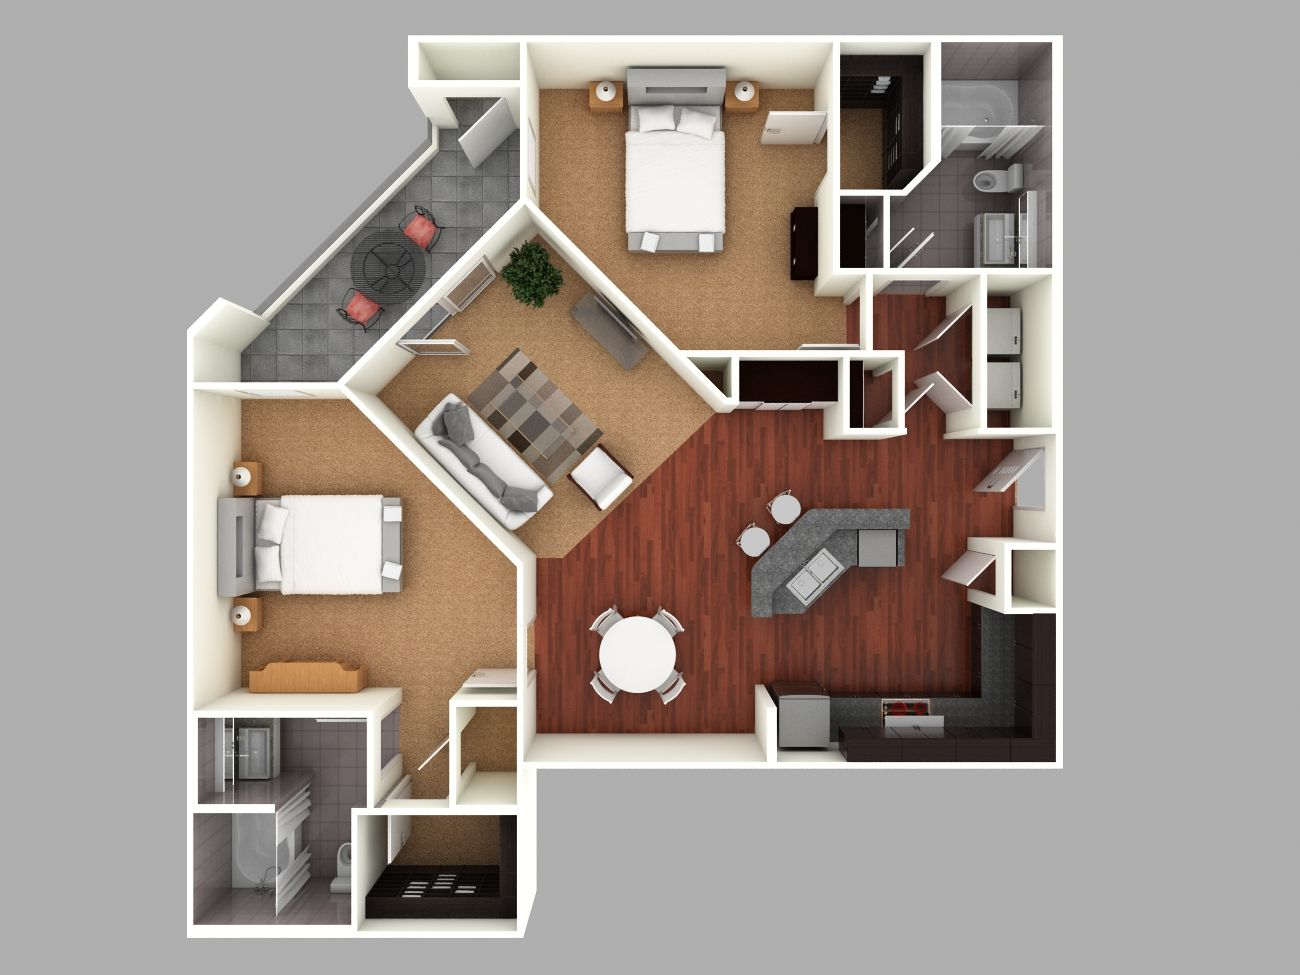 3d Colored Floor Plan House Floor Plans Small House Plans